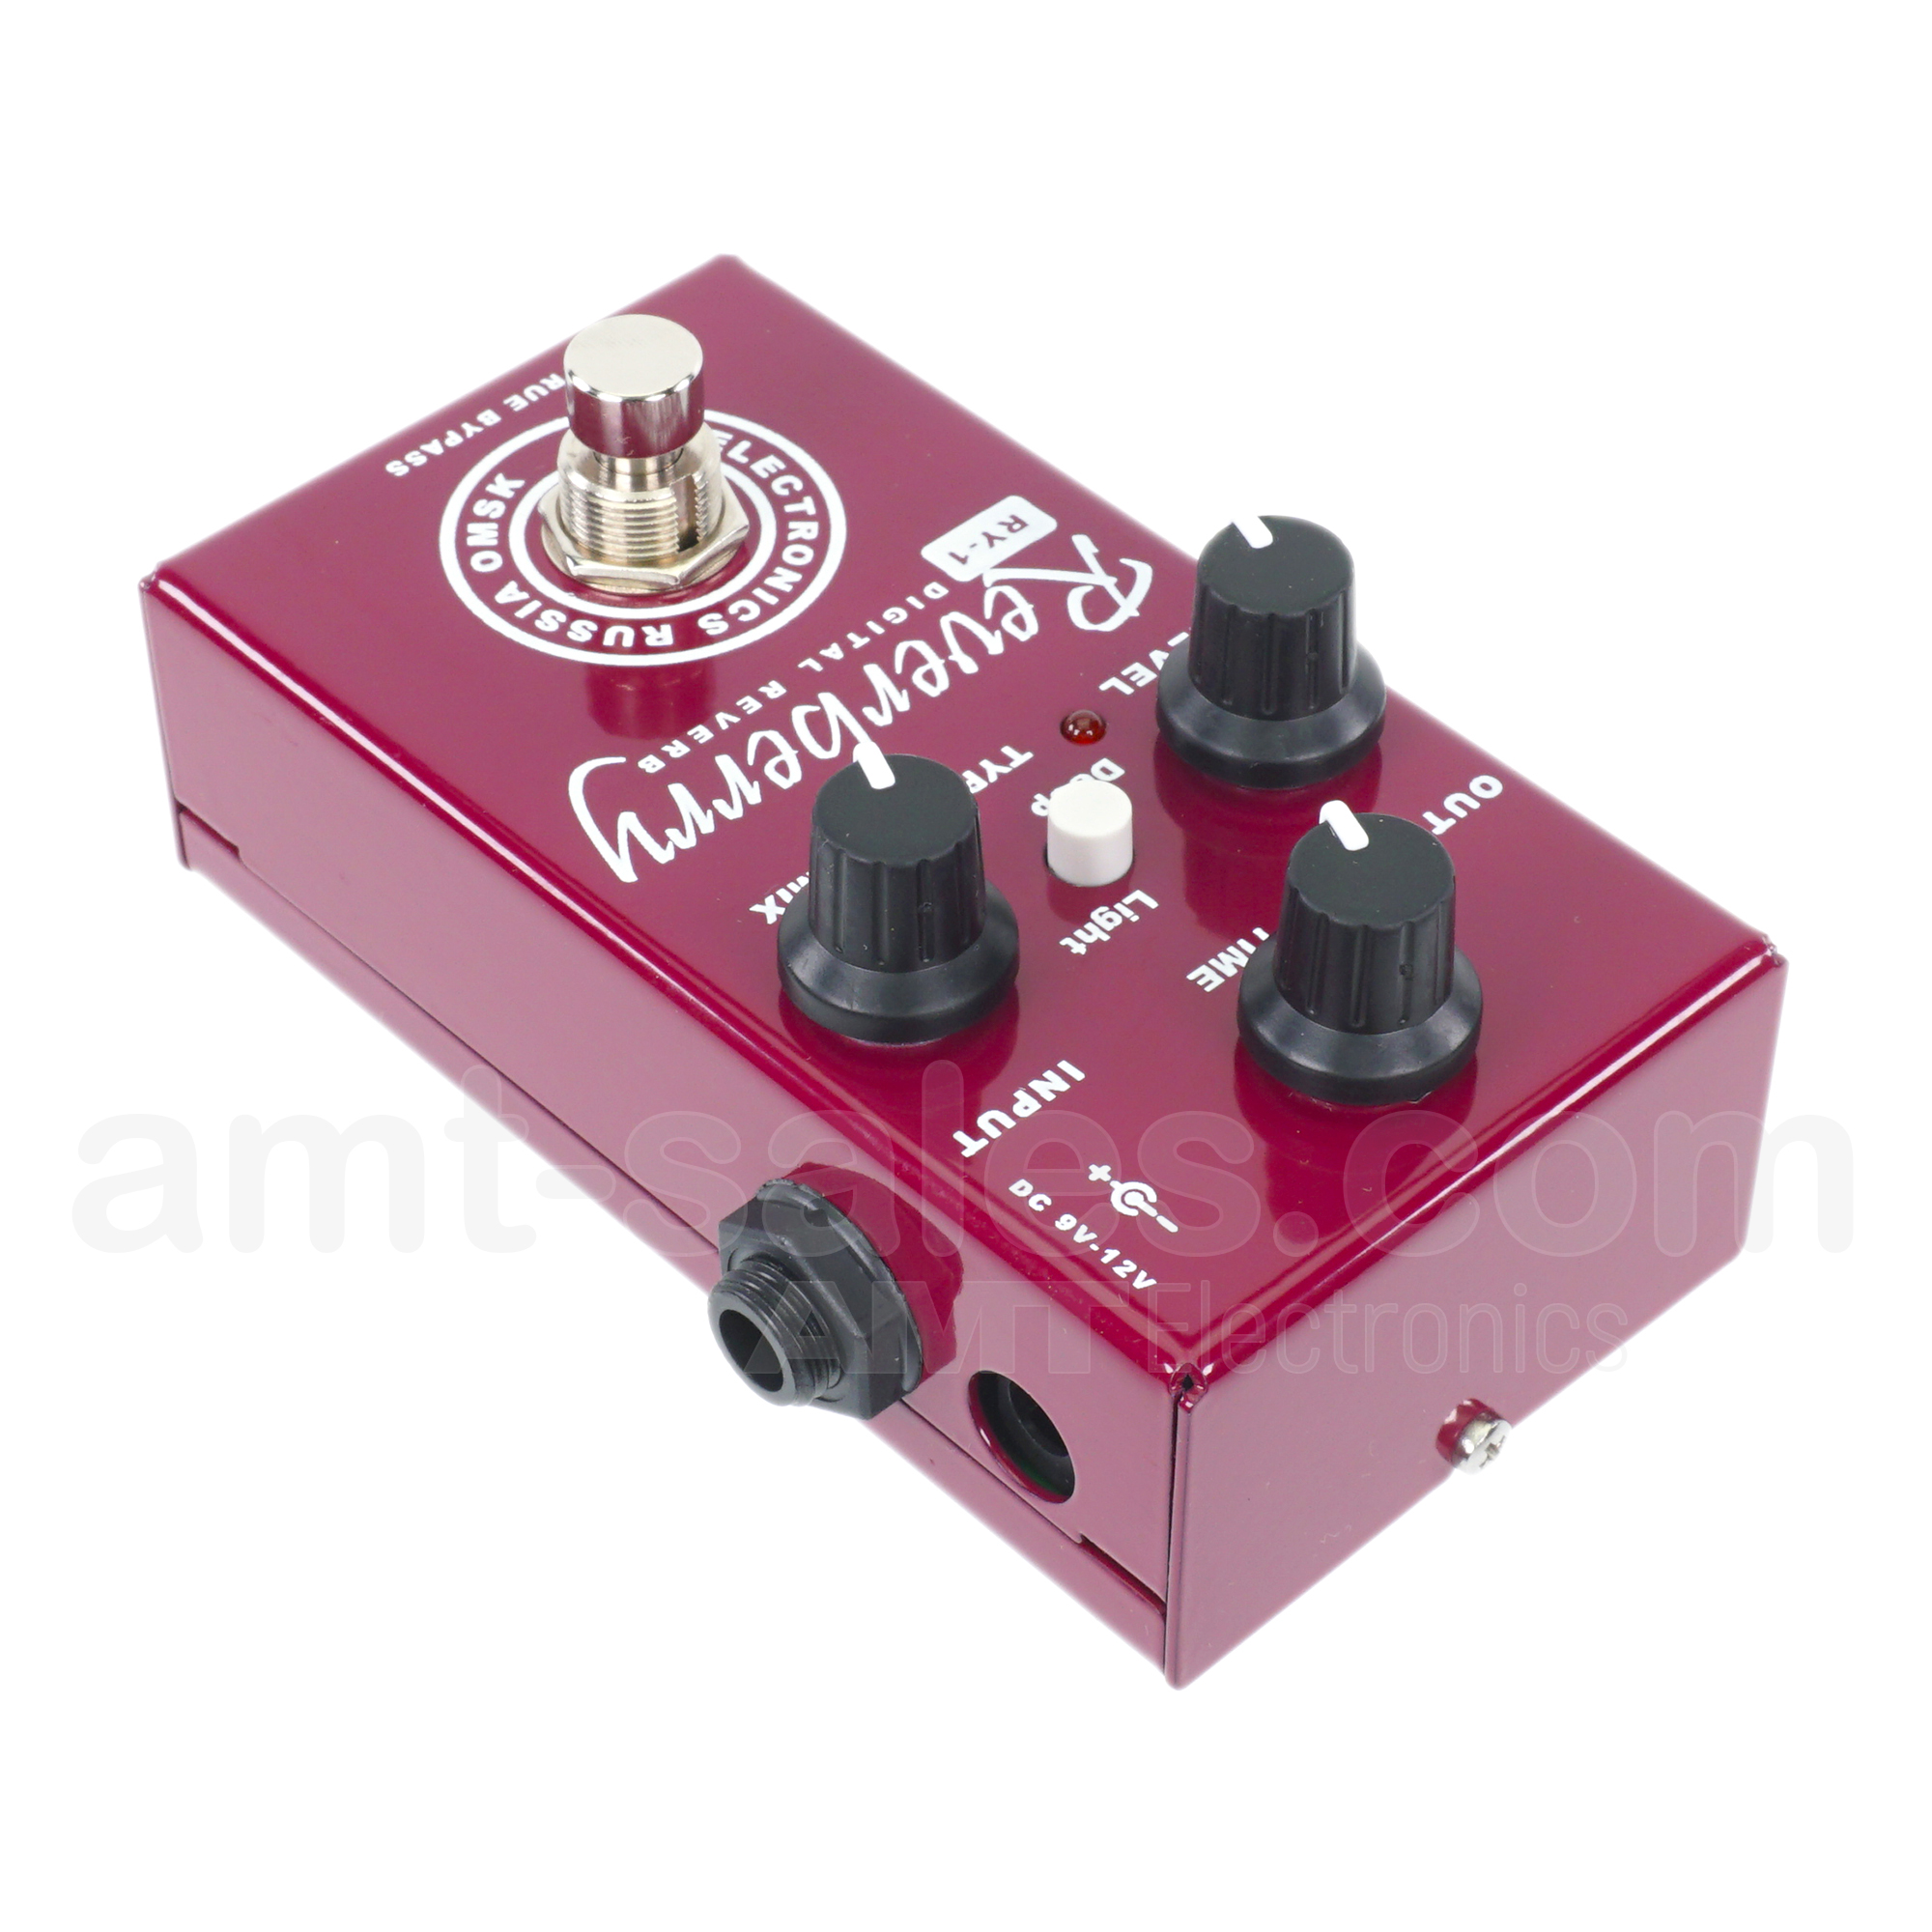 AMT RY-1 Reverberry - HQ Digital Reverb